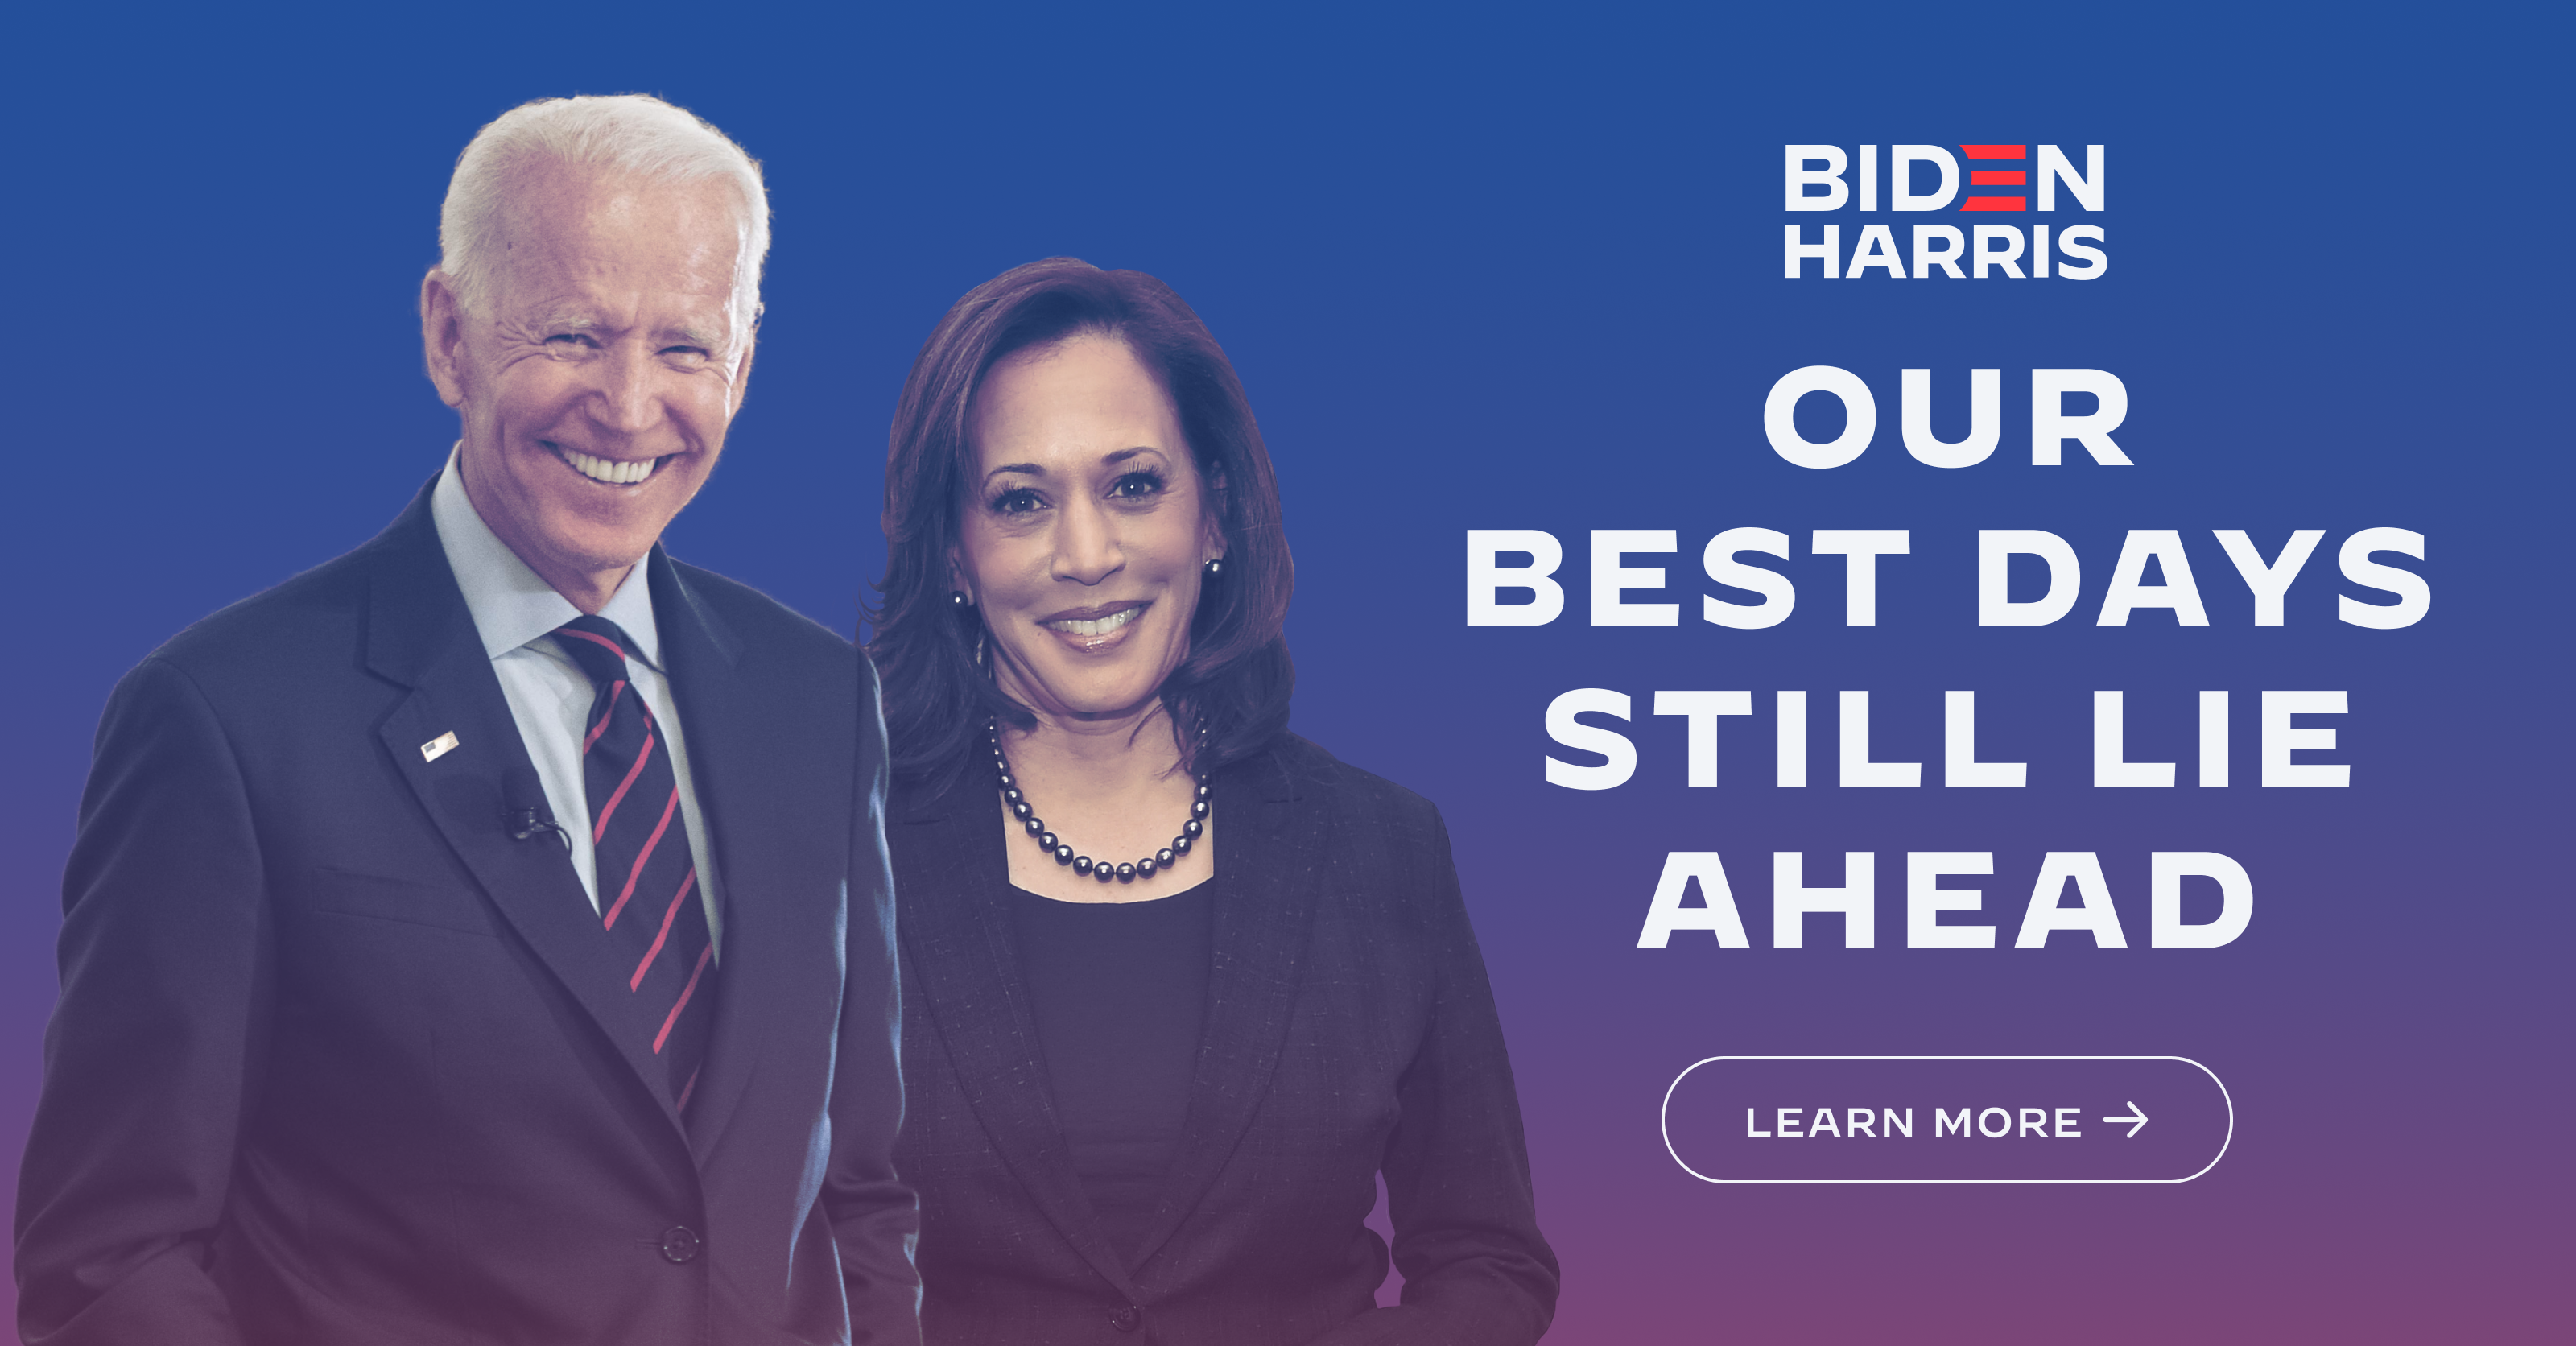 Joe Biden for President: Official Campaign Website